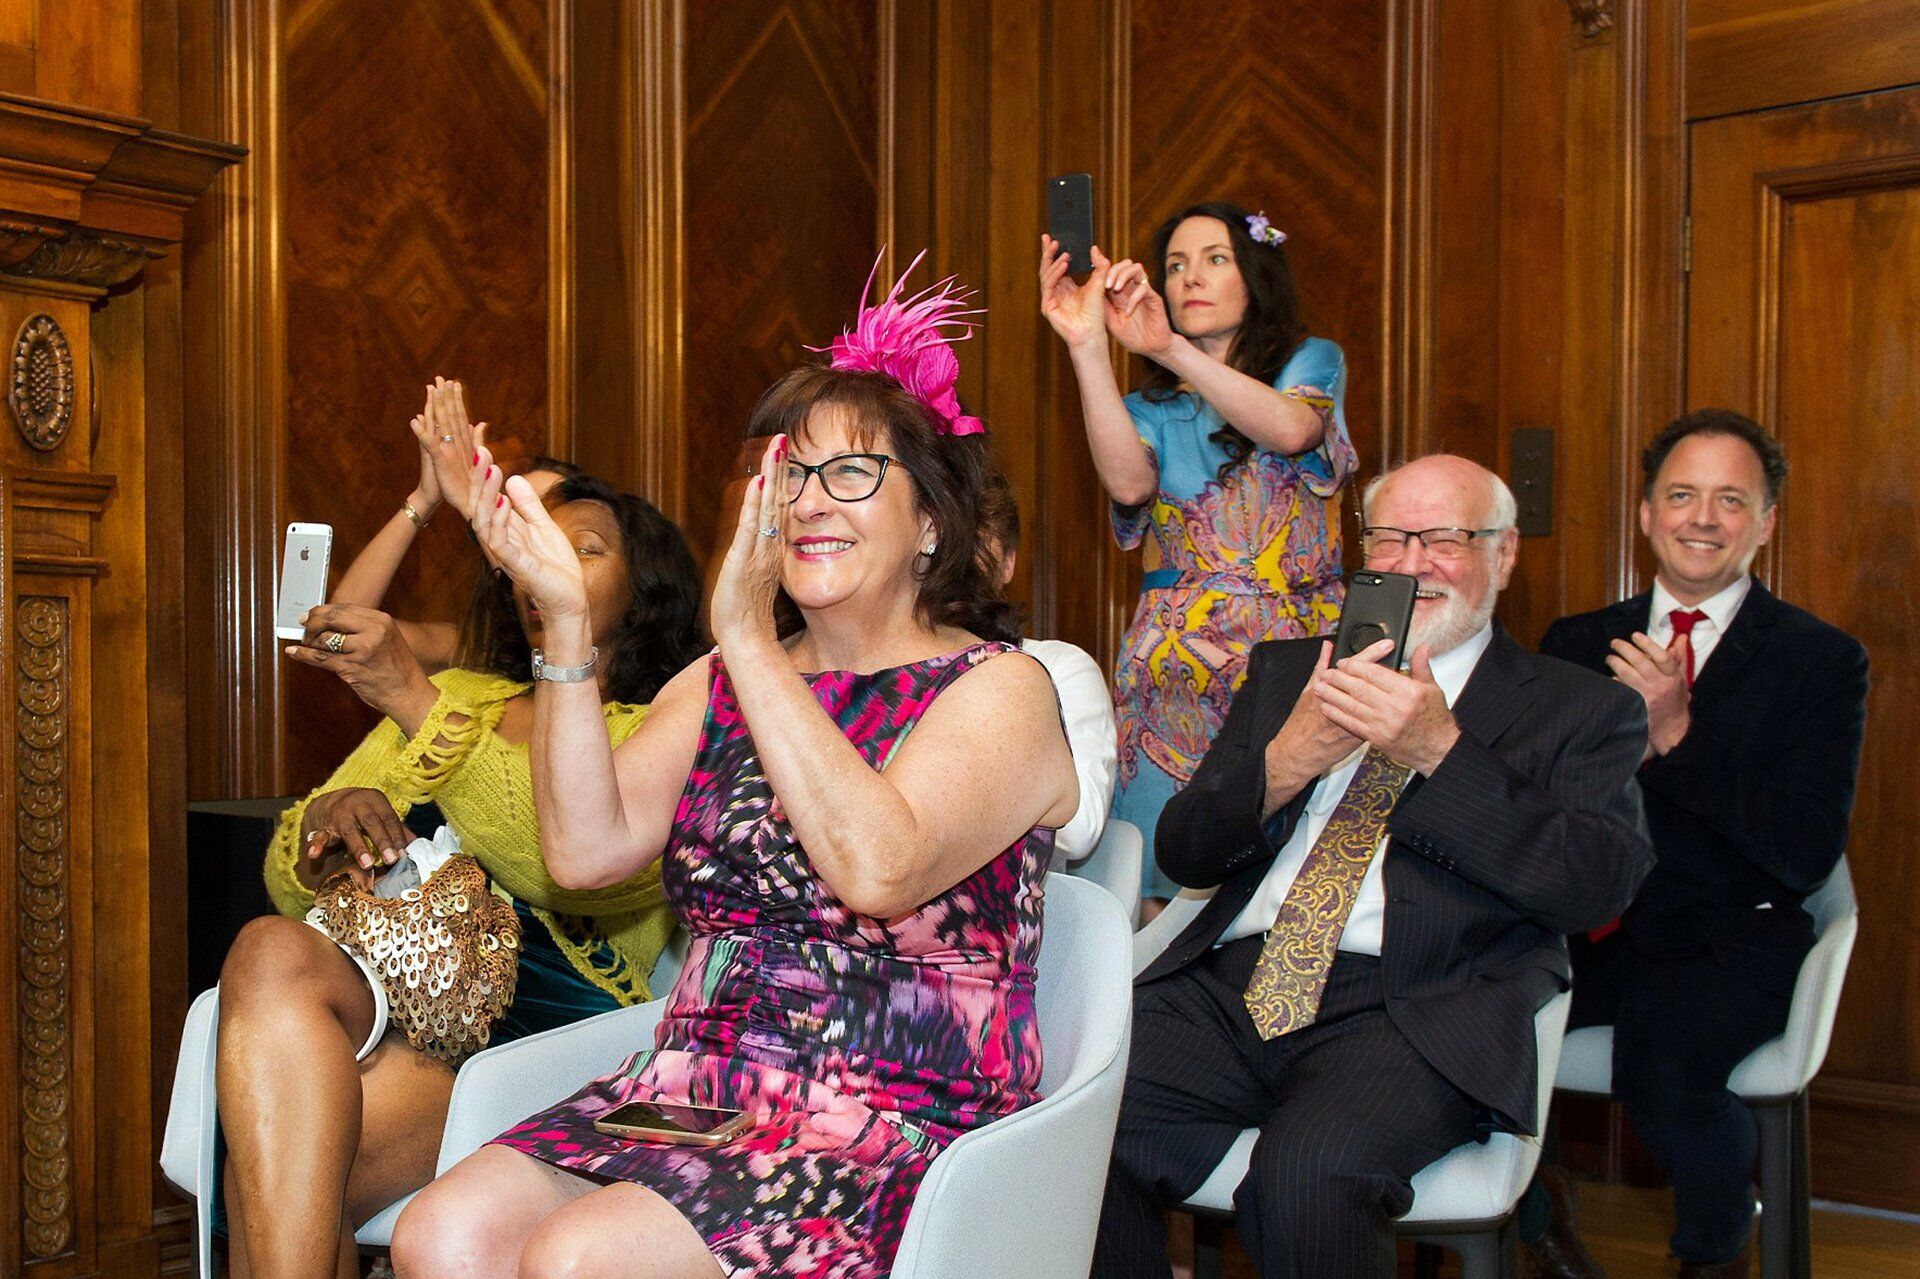 guests clapping and cheering the happy couple in the marylebone room at old marylebone town hall